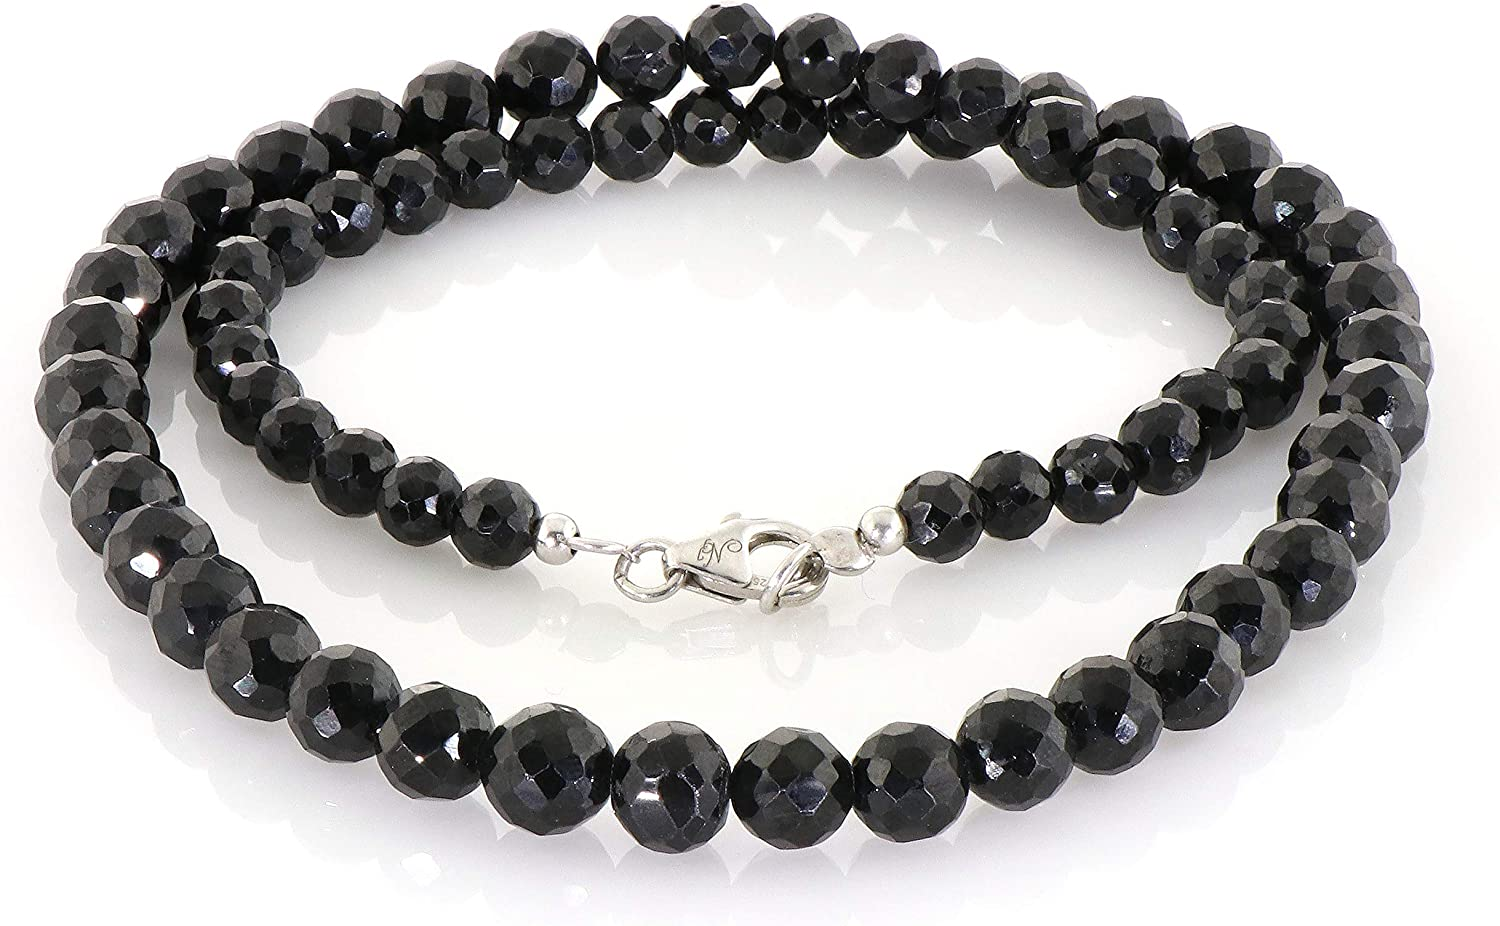 45 Natural  Black Spinel Faceted Round Beads 3.8 mm.